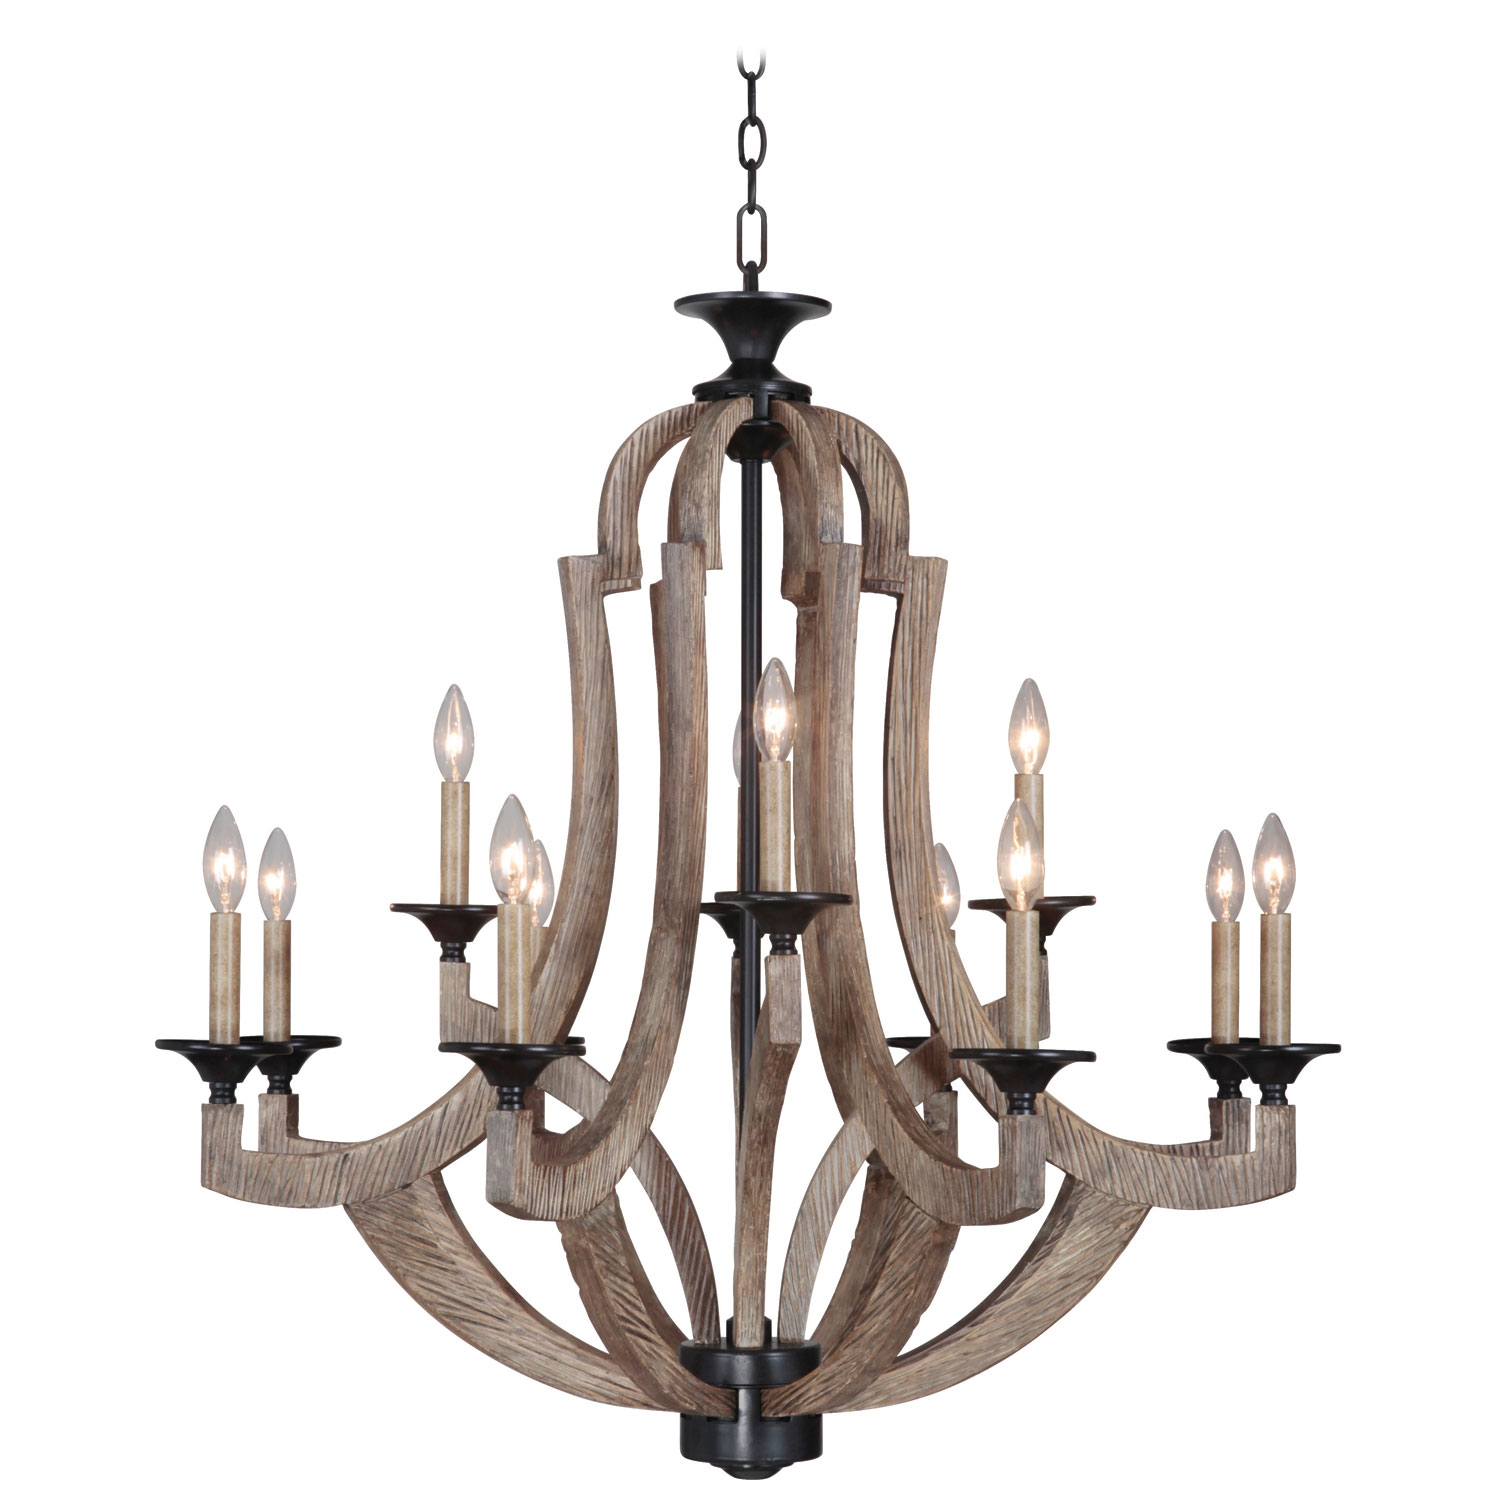 Chandeliers Crystal Modern Iron Shab Chic Country French Inside Large Iron Chandeliers (View 13 of 15)